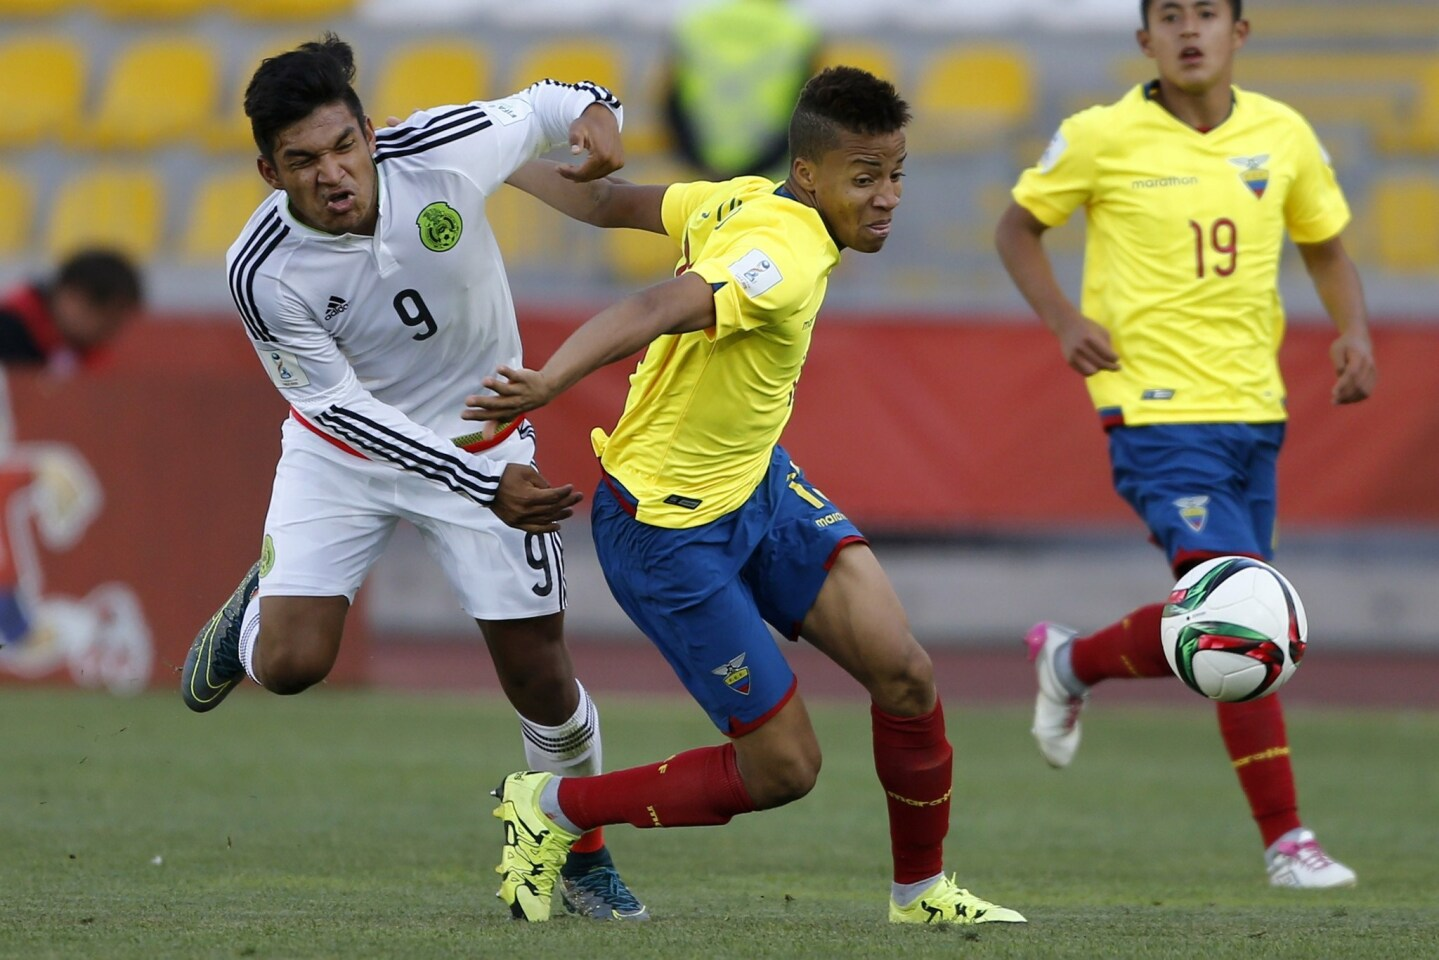 Ecuador's Byron Castillo (C) and Mexico's Eduardo Aguirre vie for the ball during their U-17 WC football match at the Francisco Sánchez Rumoroso stadium in Coquimbo, Chile, on November 2, 2015. AFP PHOTO/Andres Pina/PhotosportANDRES PINA/AFP/Getty Images ** OUTS - ELSENT, FPG, CM - OUTS * NM, PH, VA if sourced by CT, LA or MoD **